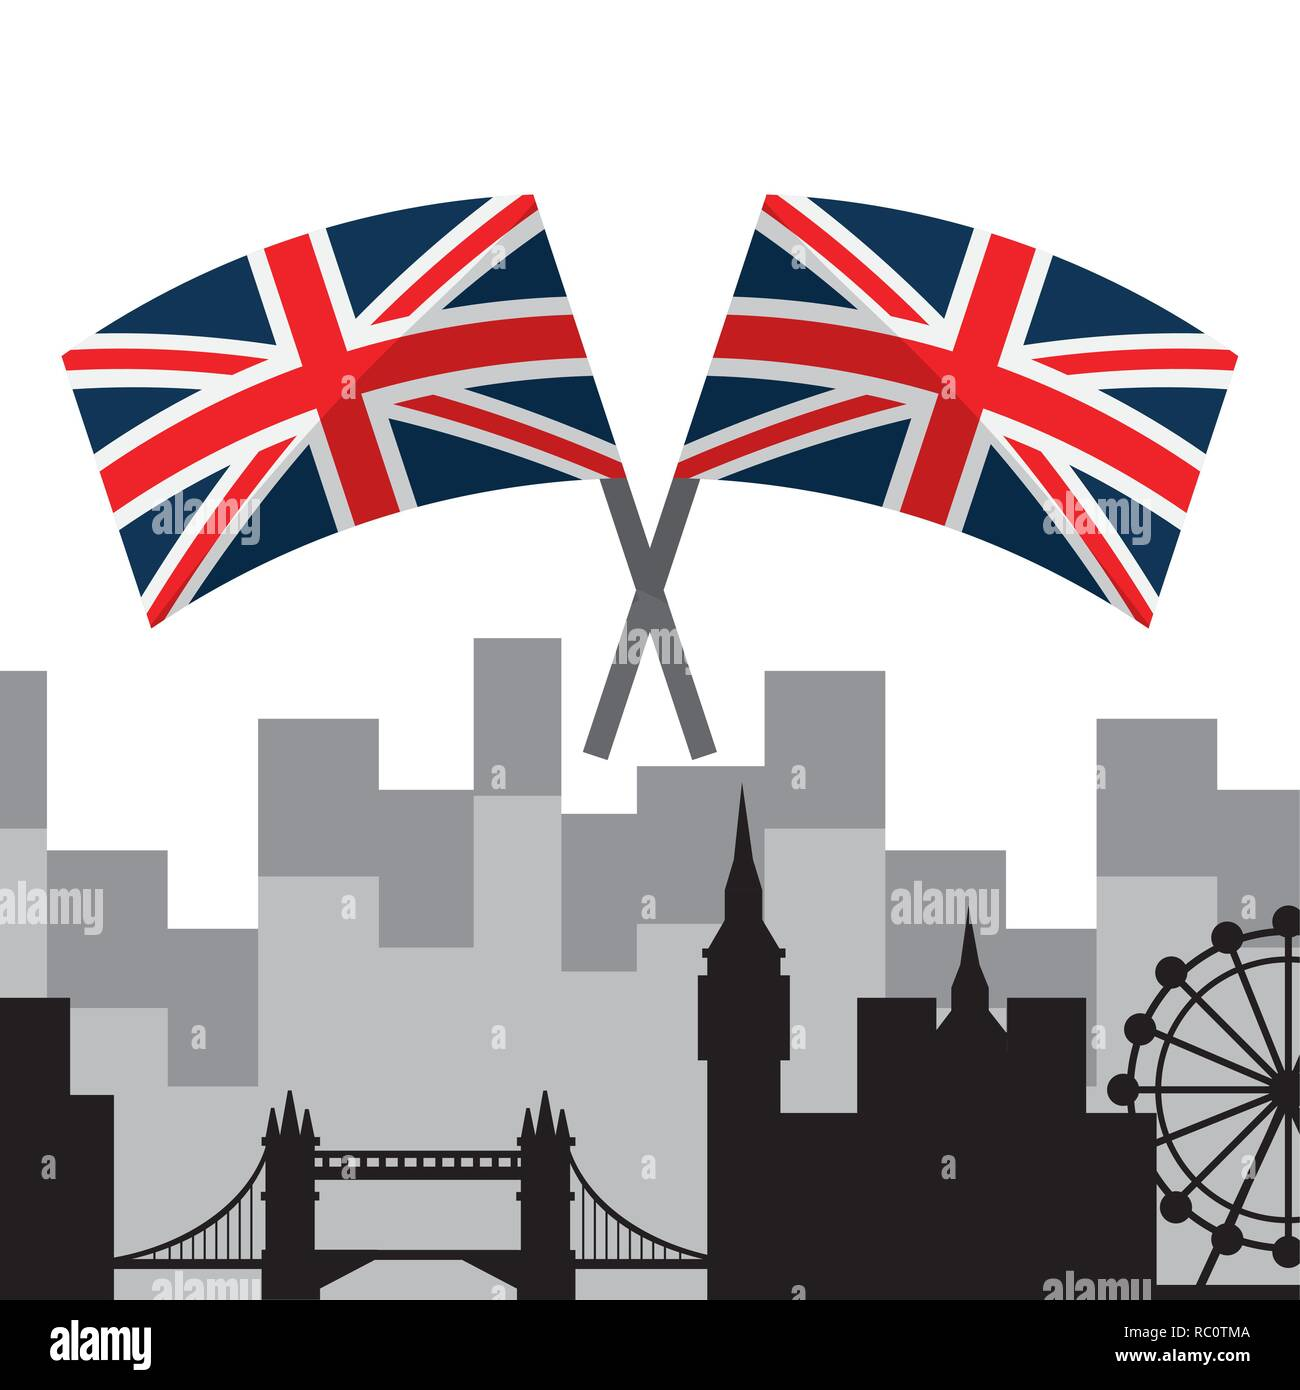 London landmarks design  - Stock Vector